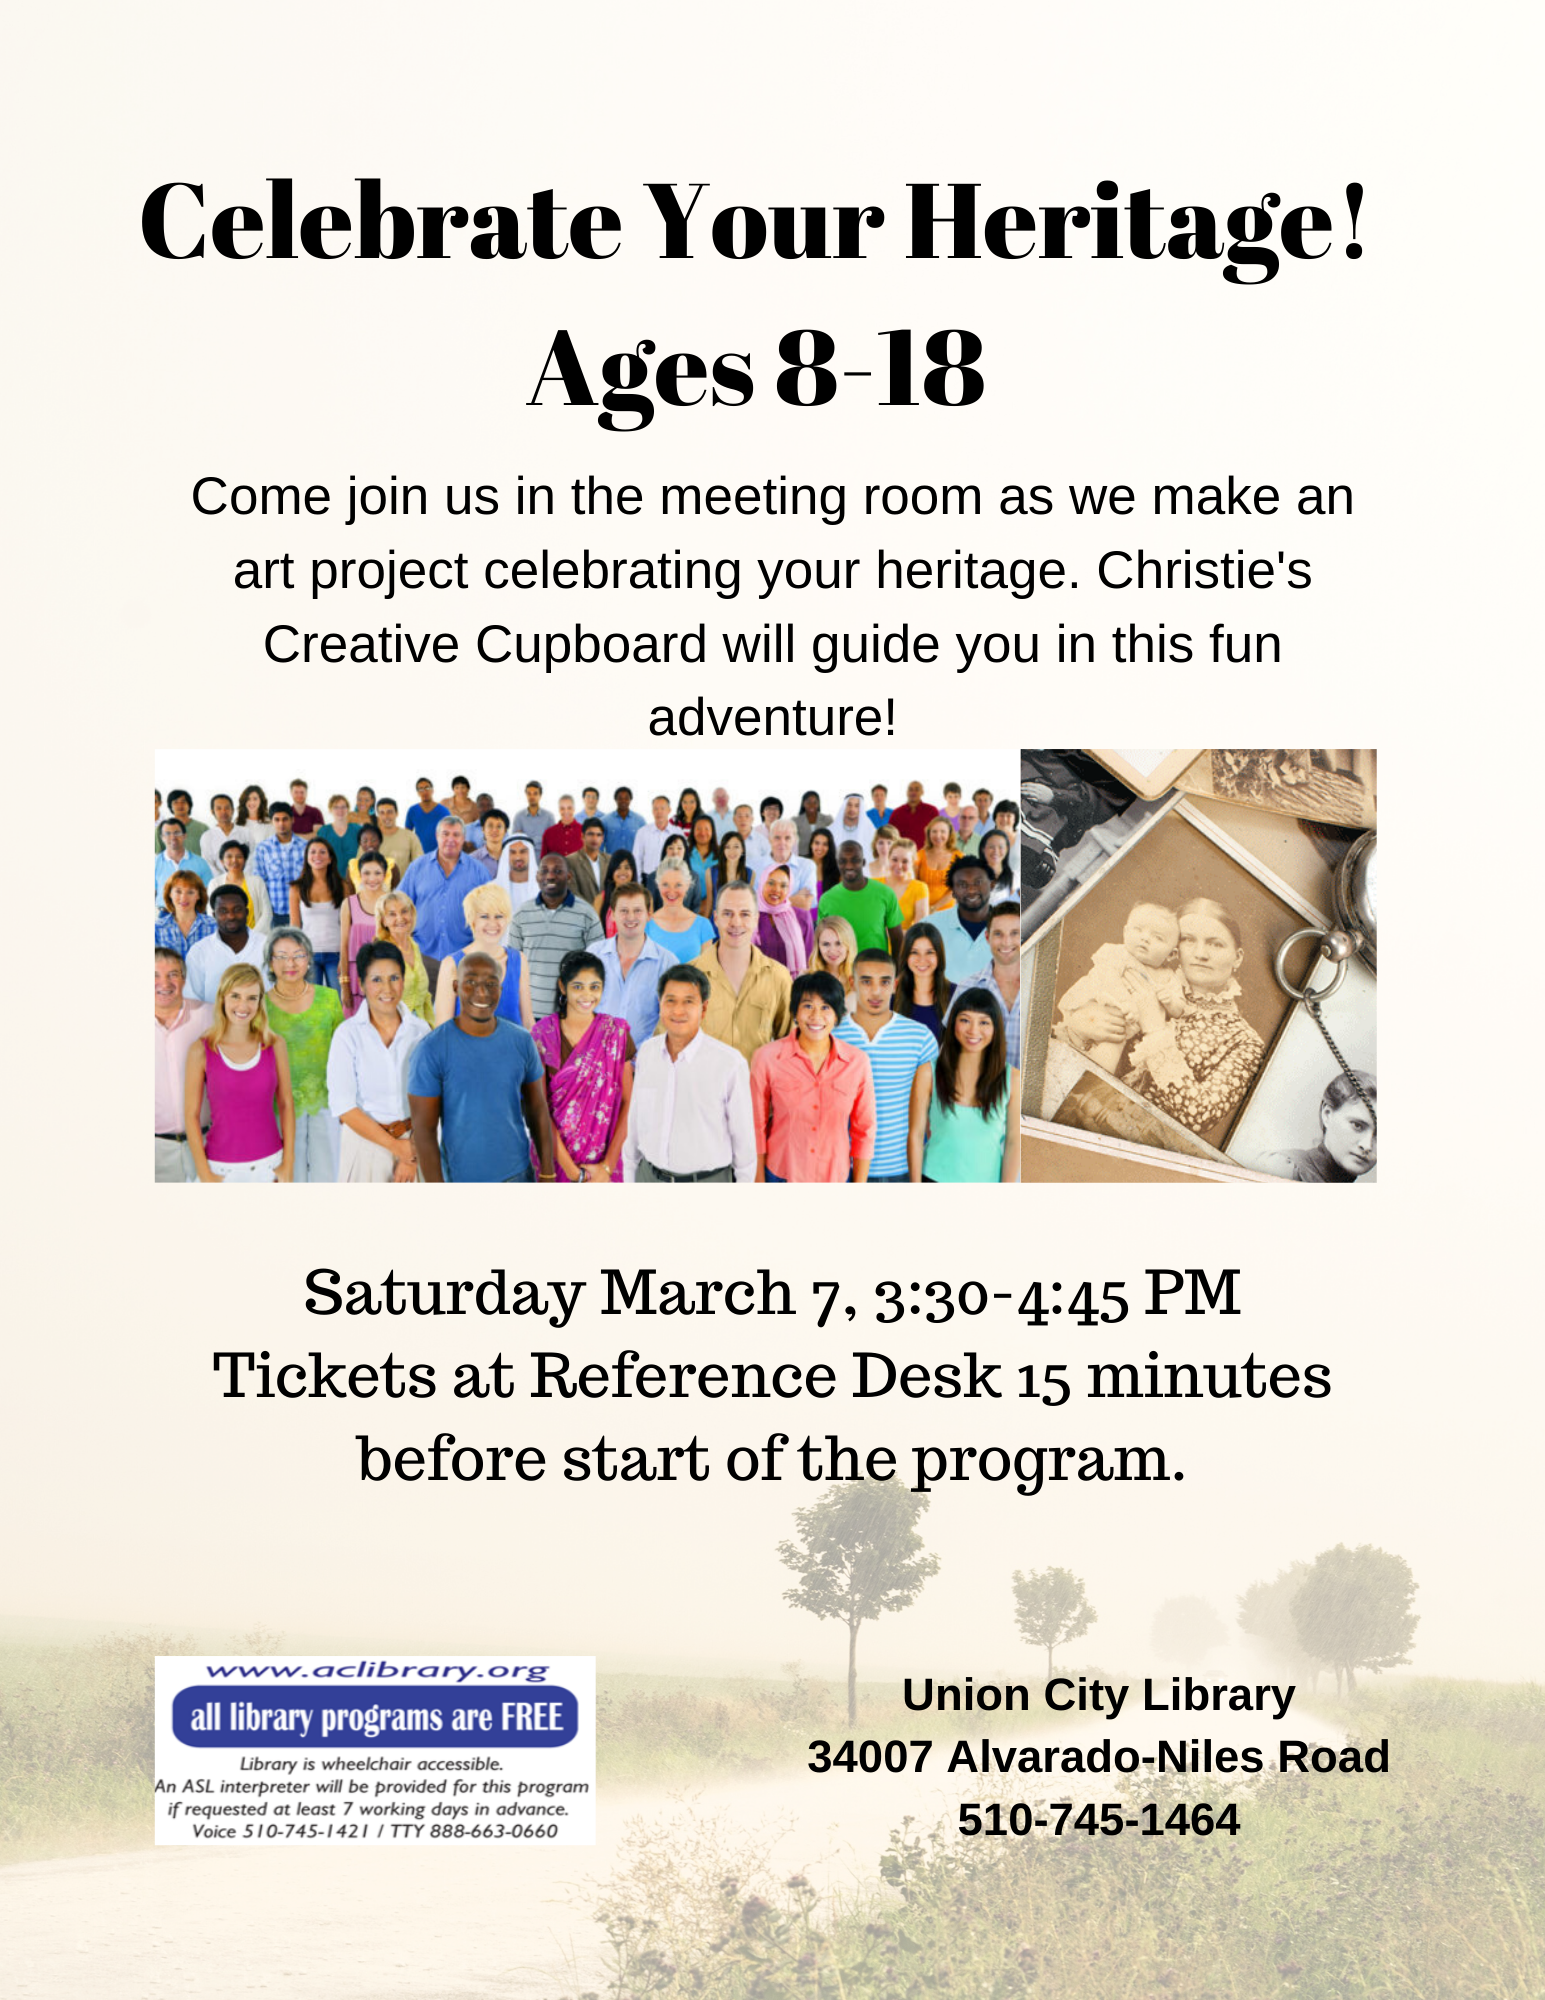 Celebrate Your Heritage:  Art Program for 8-18 year olds